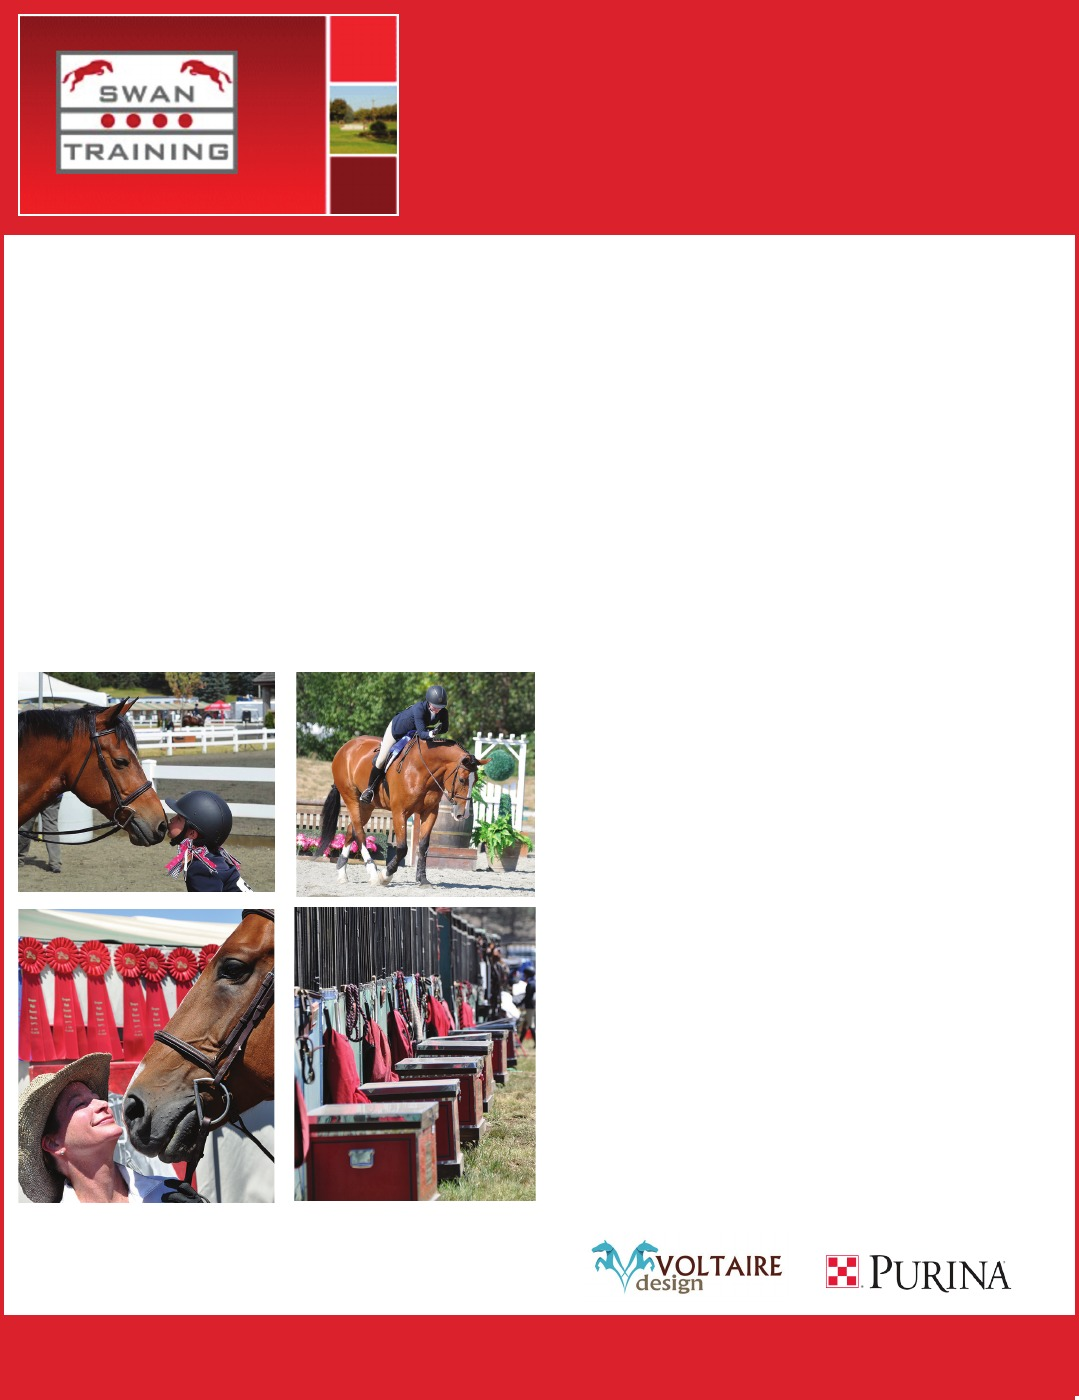 I have to write a research paper on: Competitive horse riding community what's it like?